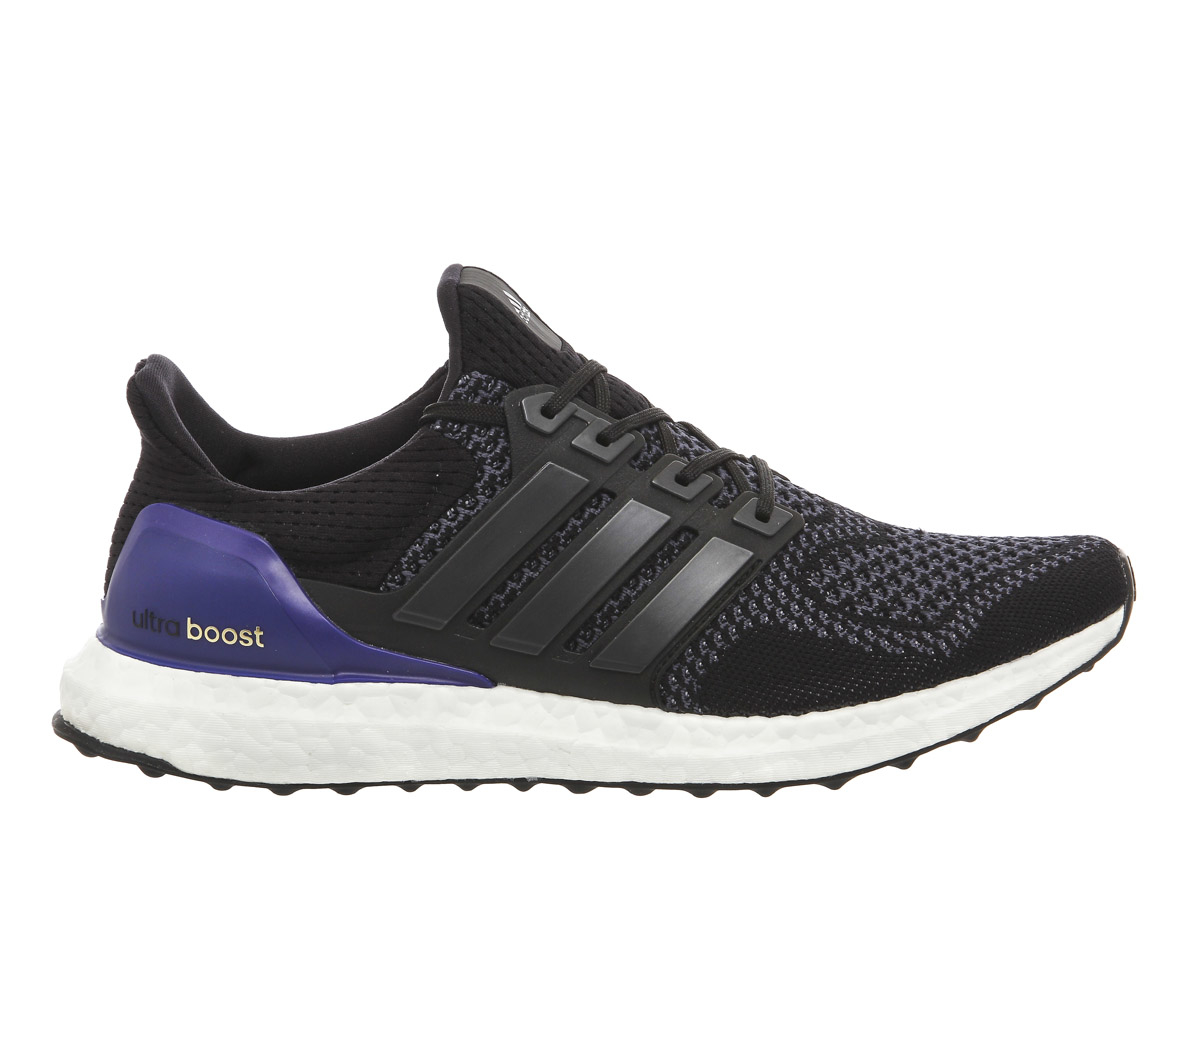 lyst adidas ultra boost trainers in black. Black Bedroom Furniture Sets. Home Design Ideas